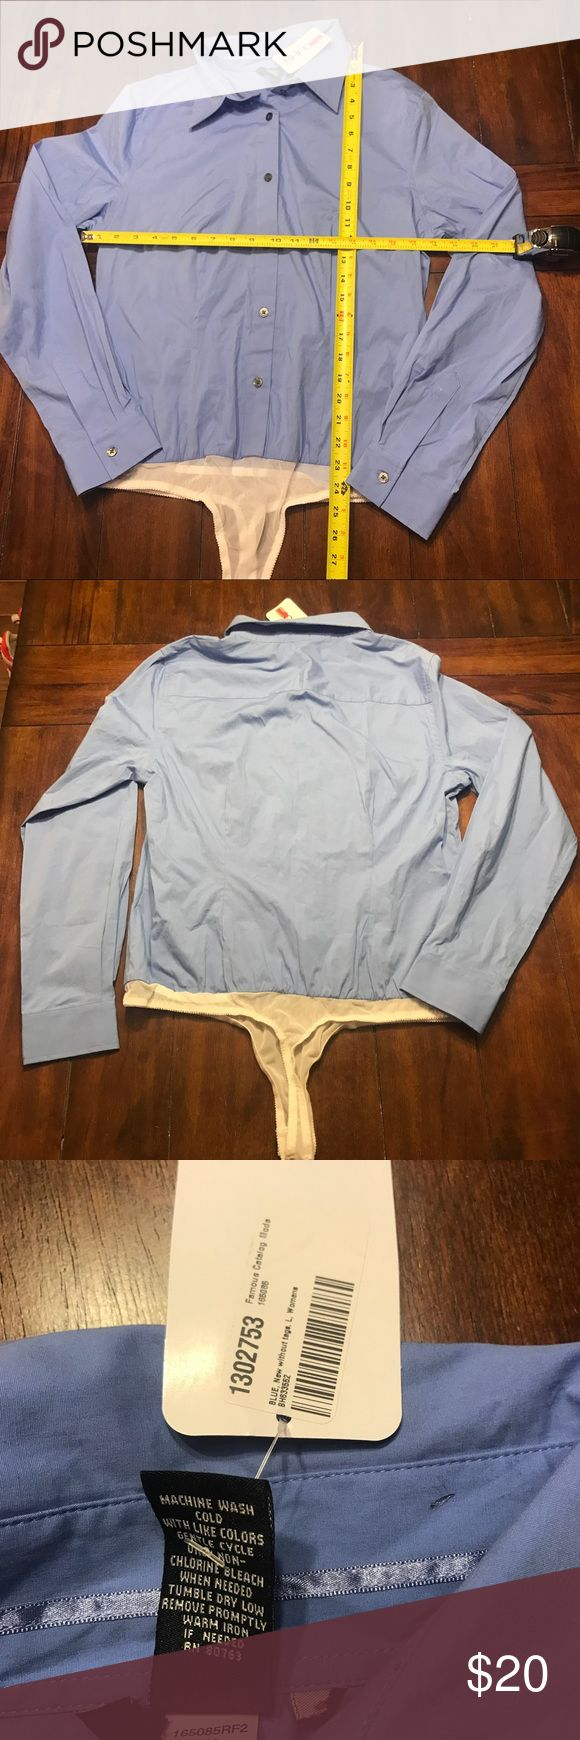 NWT Moda International blouse bodysuit large l lg New. Came from Victoria's Secret catalog. Moda international. I purchased from a different retailer. It's a true large.  🌸I'm not in the office as much so I need fewer office clothes- tank advantage!🦋all of my clothes are washed in cold and hung to dry💠Moving and need to purge - everything going CHEAP!🌺 Bundle and send me your offers!!! 💠 New York company express ann taylor loft dress top shirt American eagle ae pink Victoria's Secret…